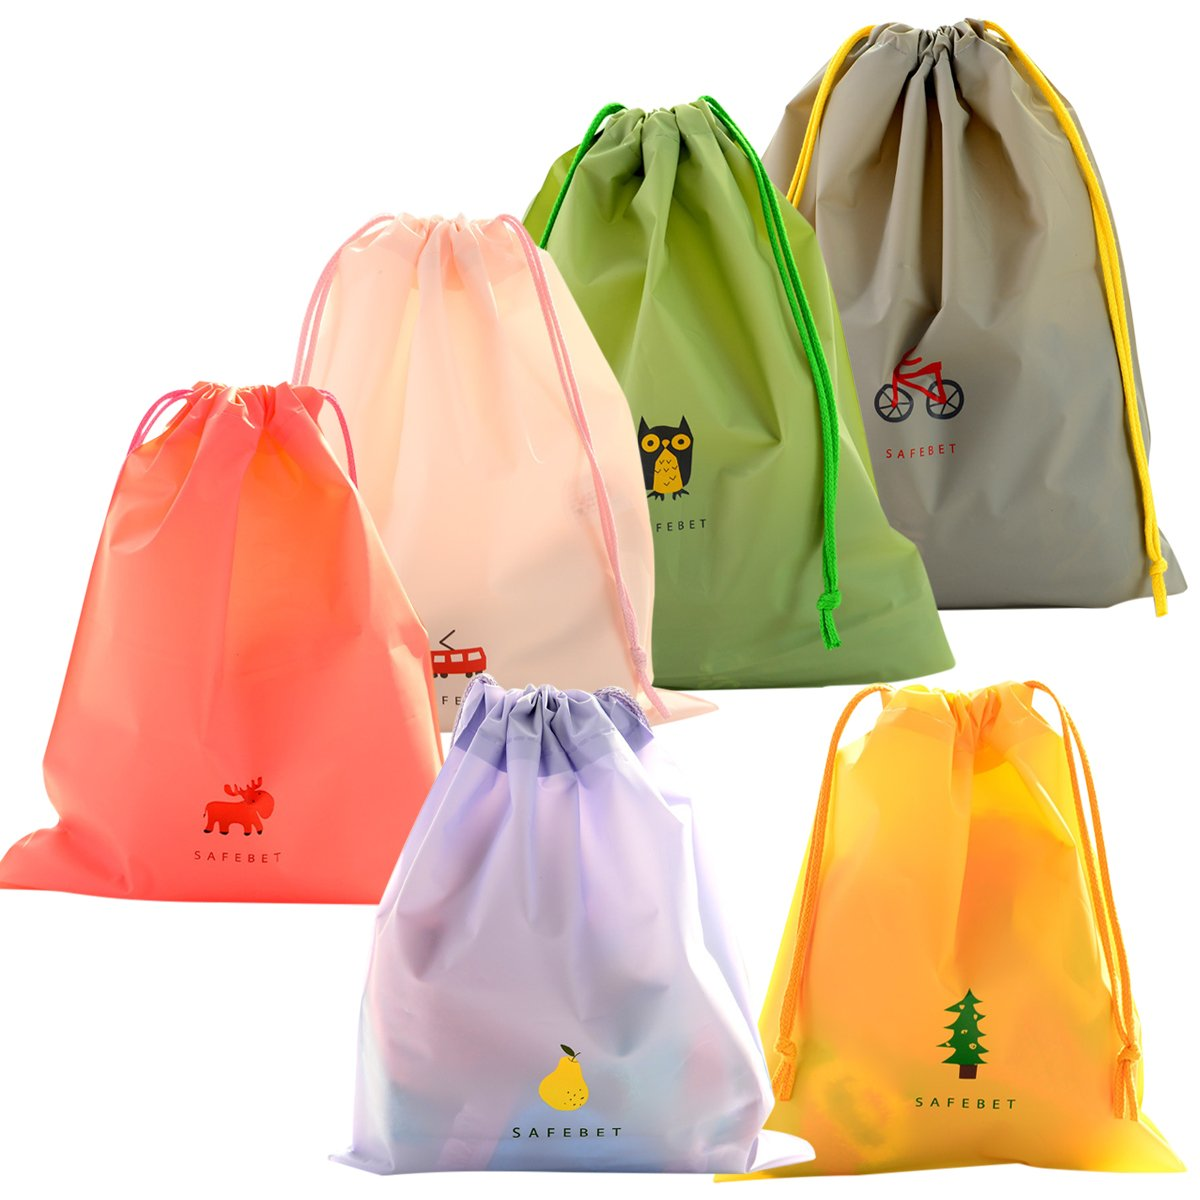 Coolzon® Set of 6 Waterproof Drawstring Bags Folding Tote Sack for Outdoor Sport Beach Holiday School Home Travel Storage Use with 3 Sizes 6 Colors